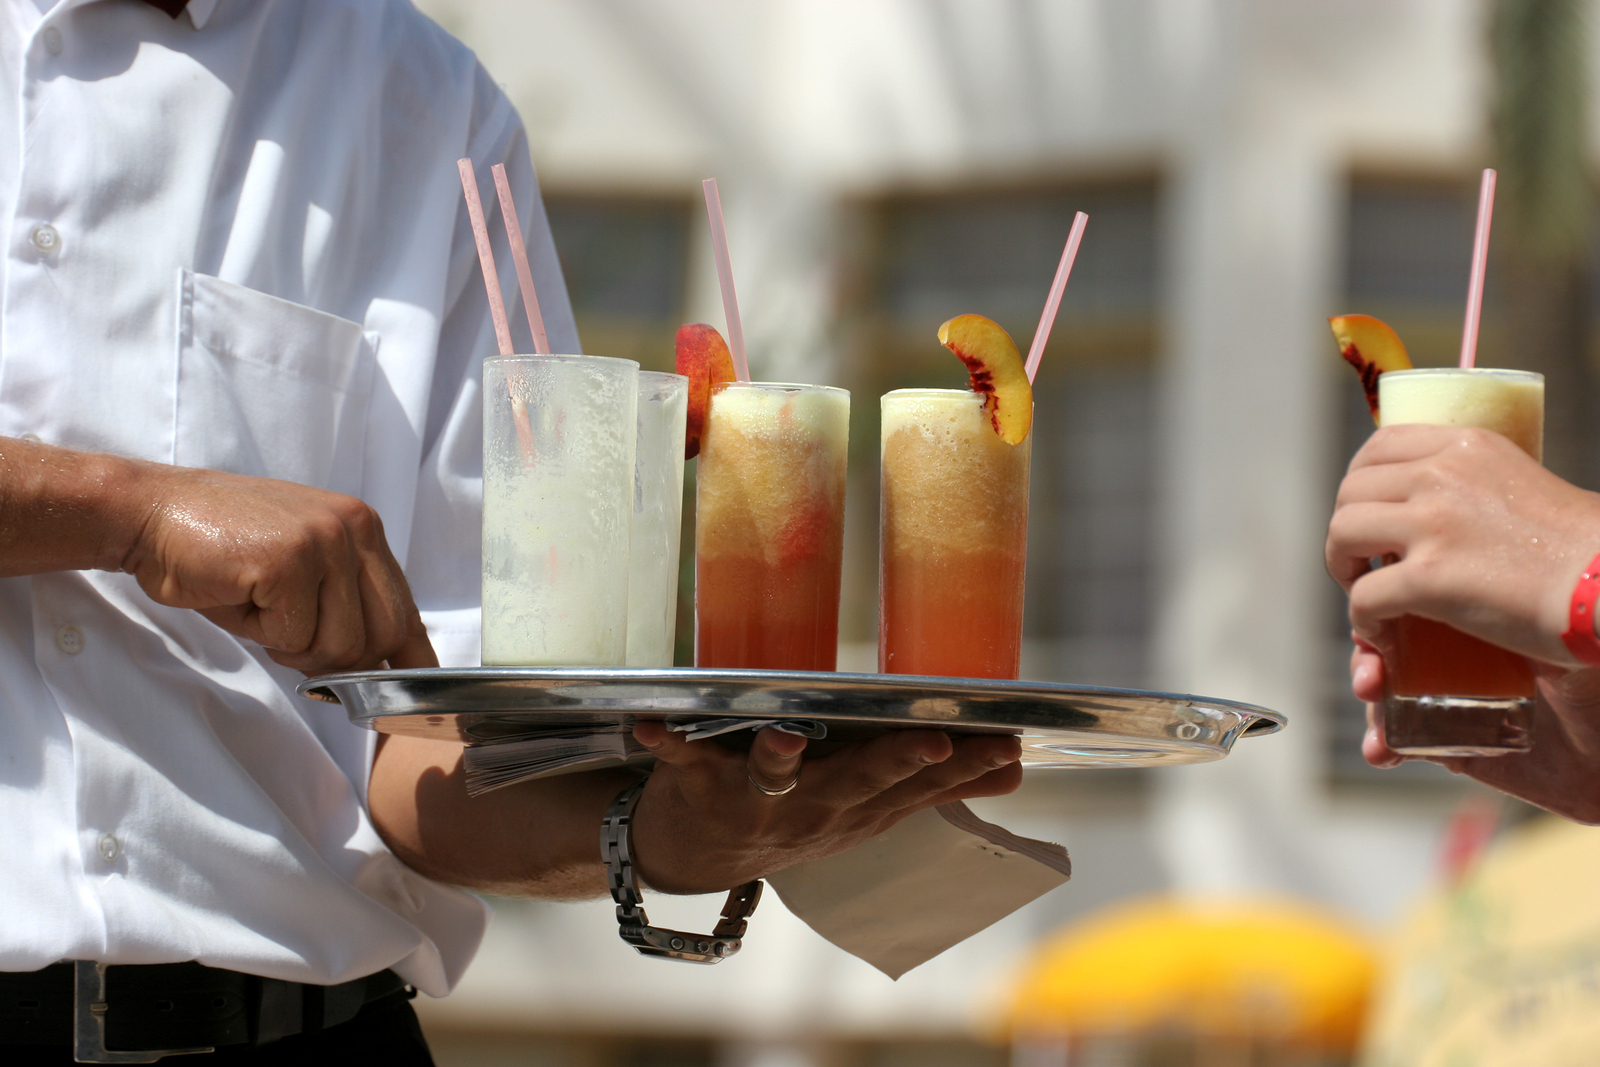 Summer Jobs in Food Service: Maximize on the Skills You Gain